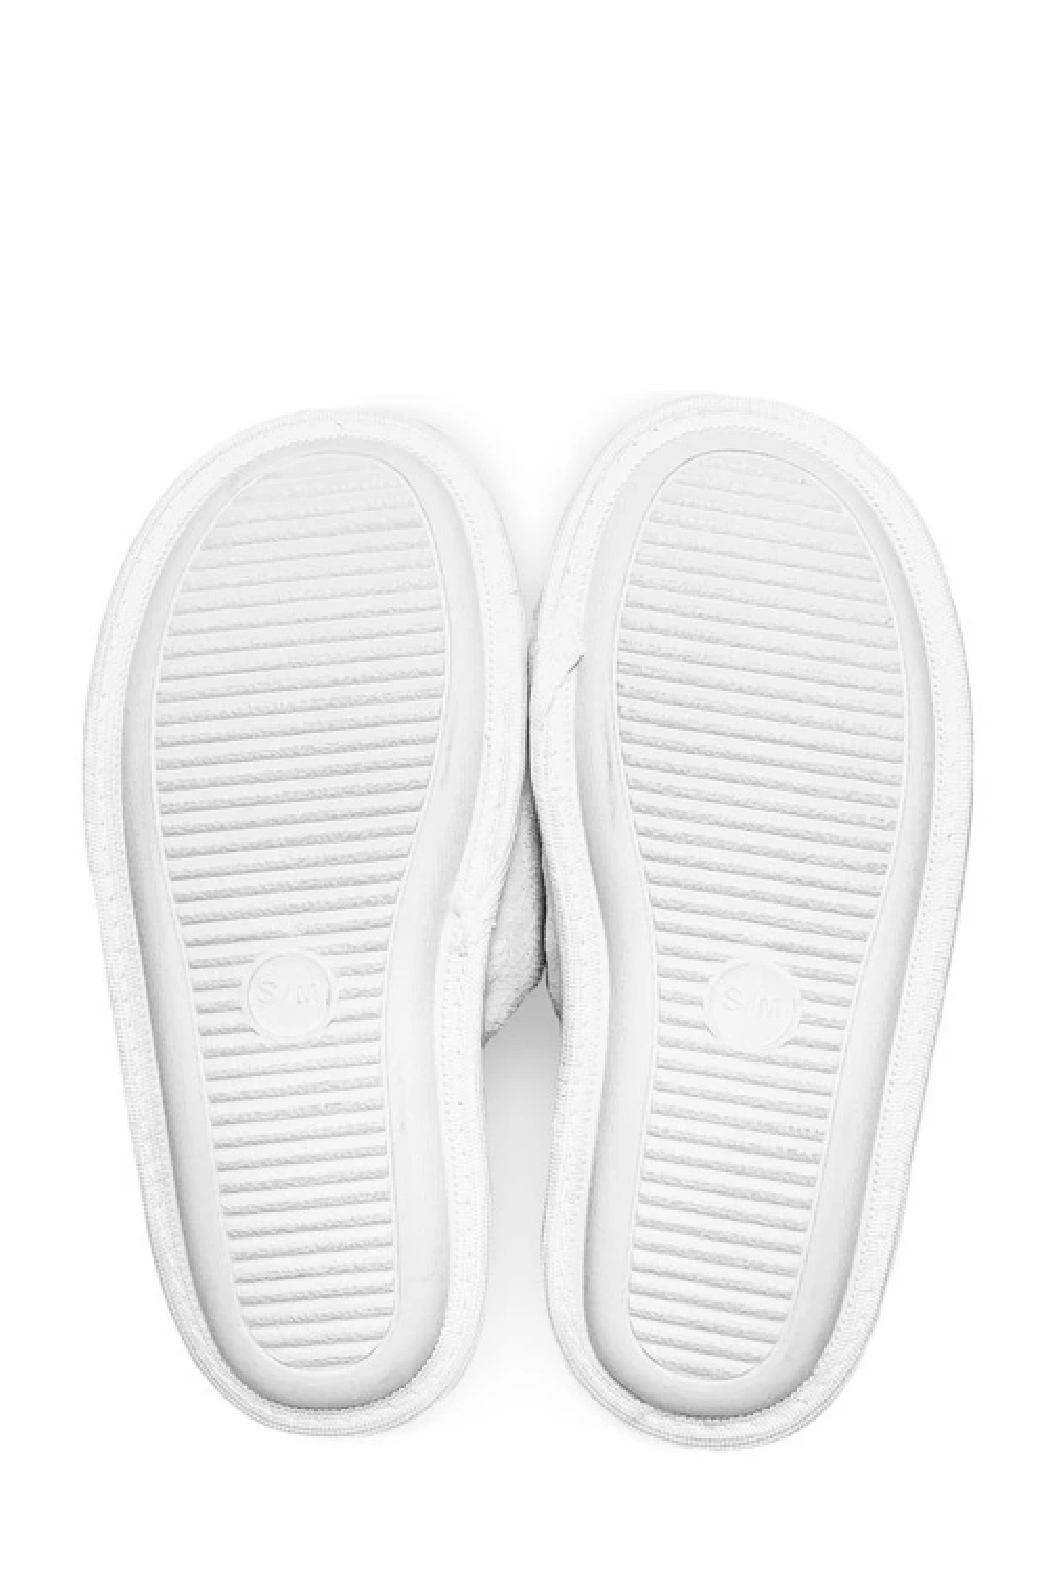 Los Angeles Trading Co.  Favorite Child Slippers - Front Full Image